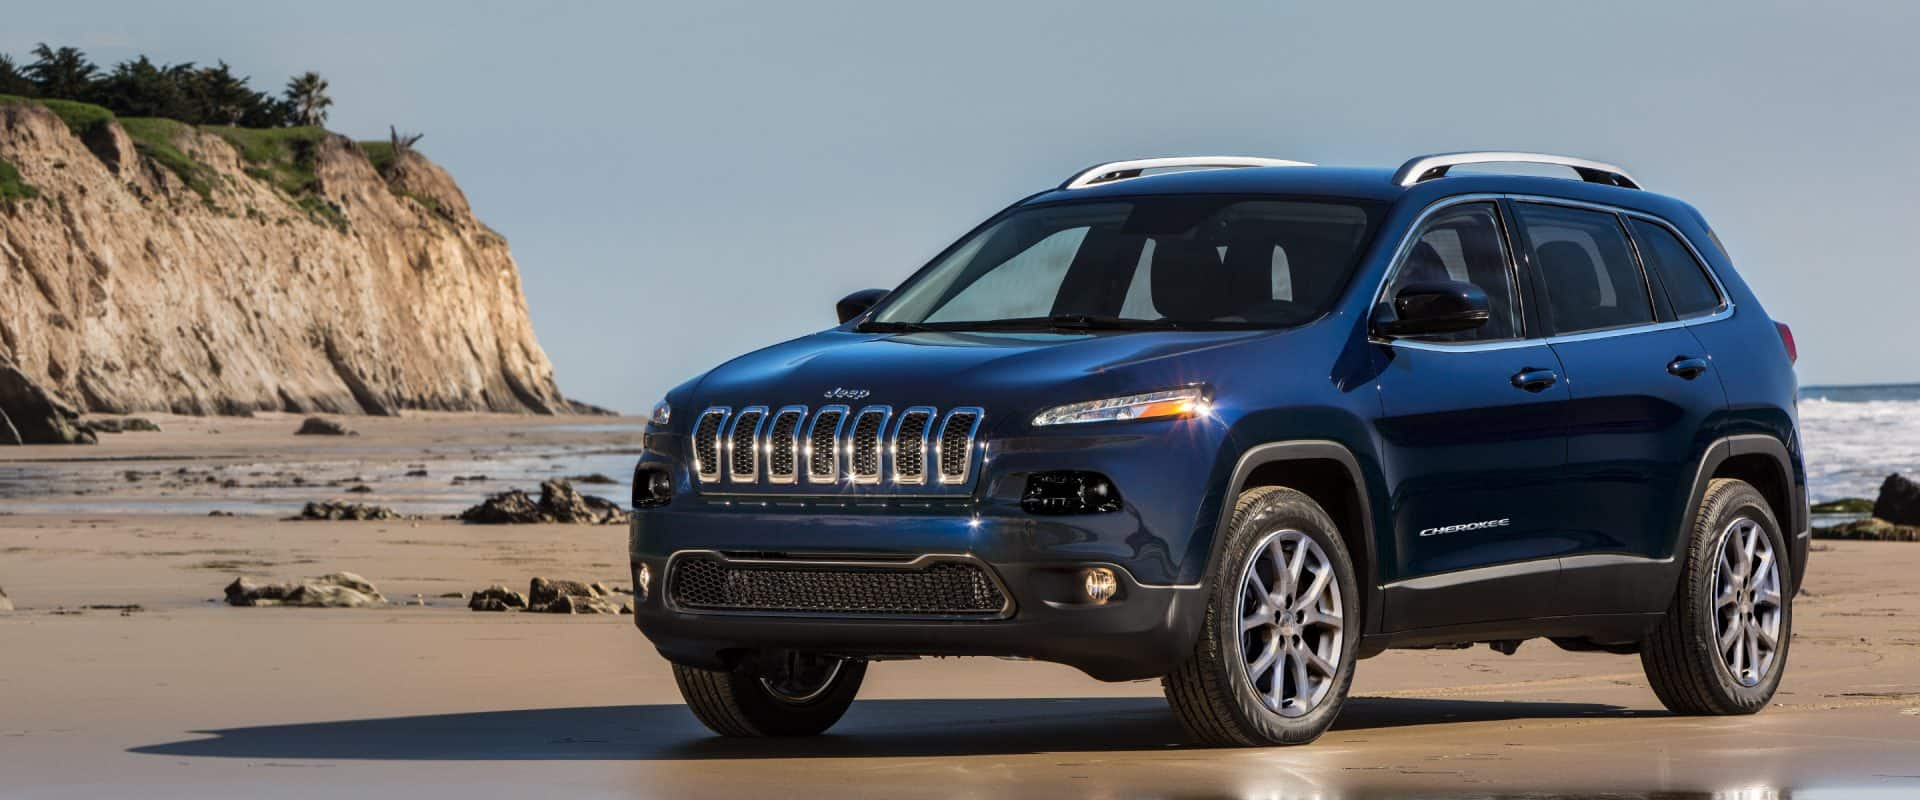 2018 jeep cherokee compact suv ready for adventure. Black Bedroom Furniture Sets. Home Design Ideas